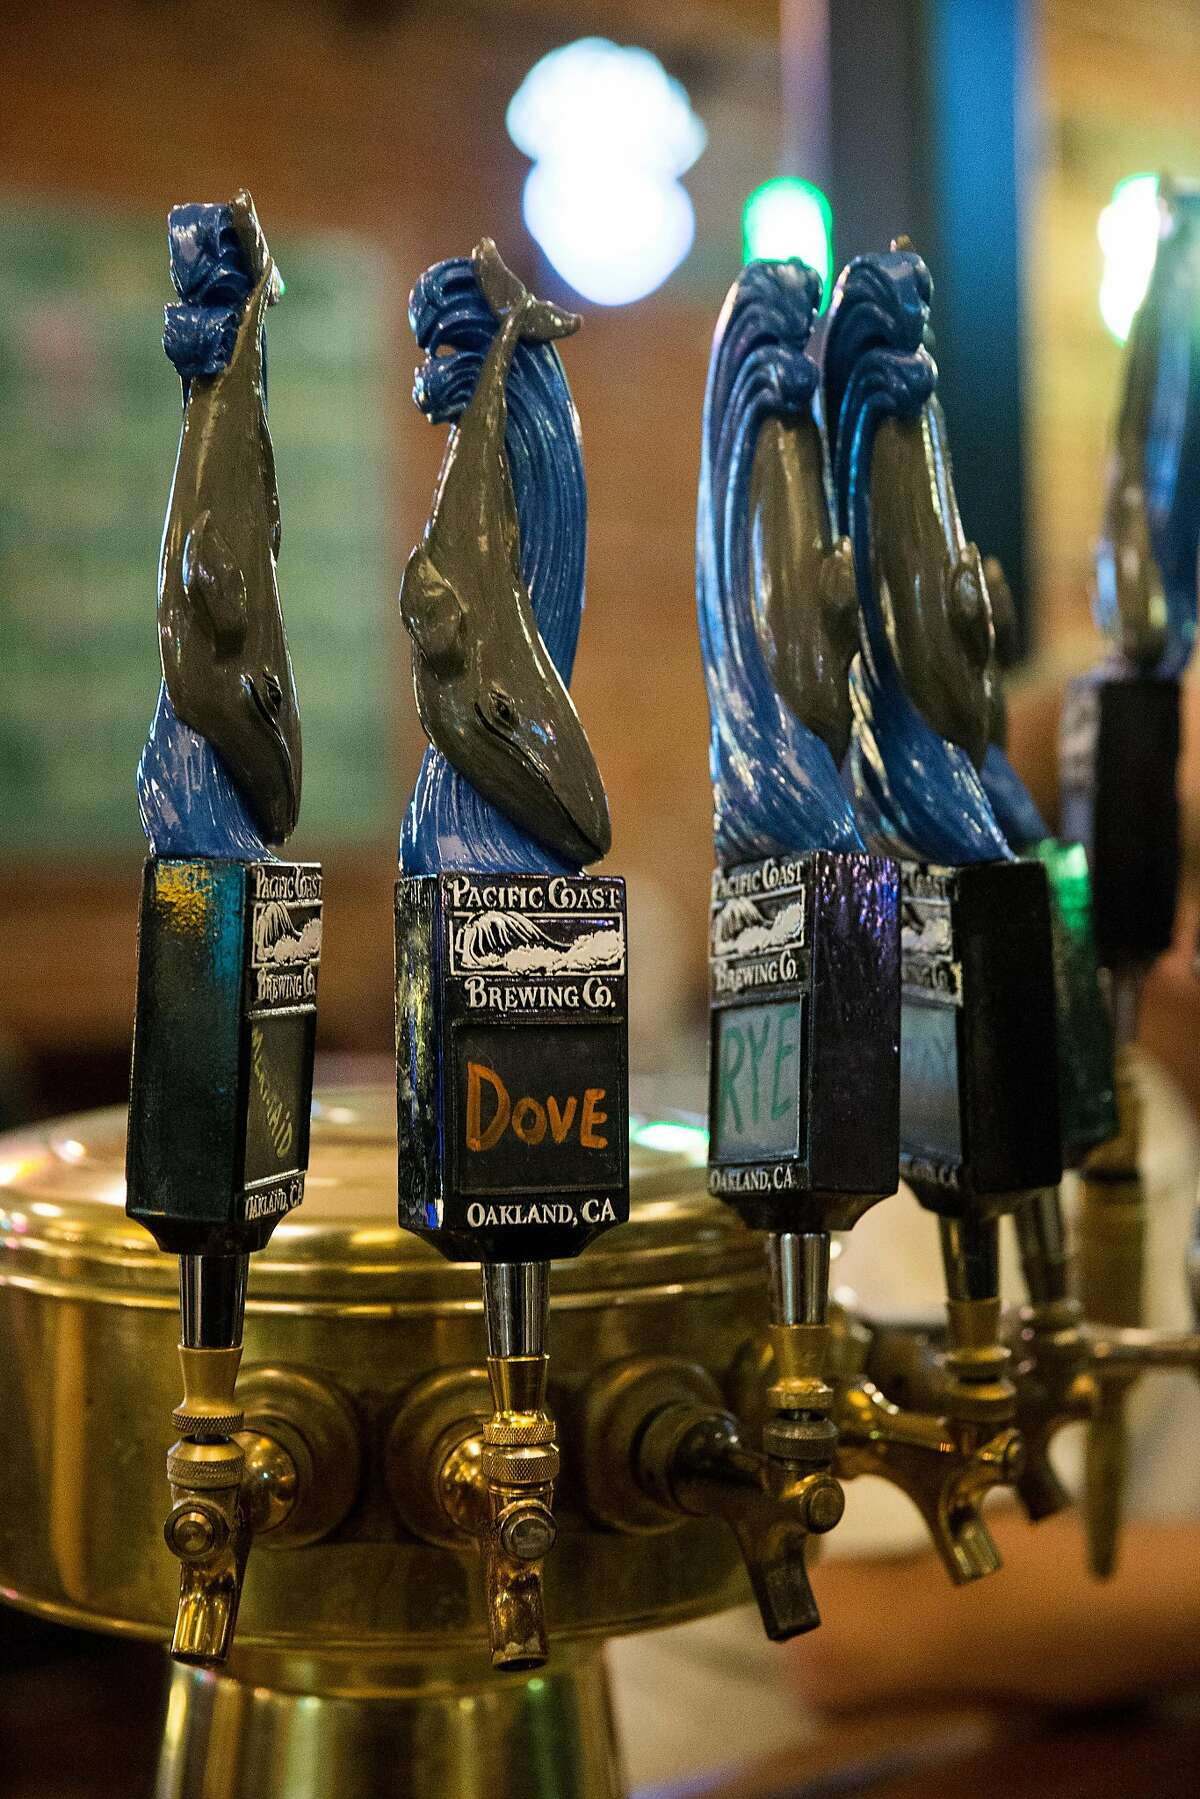 Some of the beers on tap are seen at Pacific Coast Brewing in Oakland, Calif., on Friday, June 2, 2017. The brewery, restaurant and bar has over 20 beers on tap including both their own brews and guest beers.